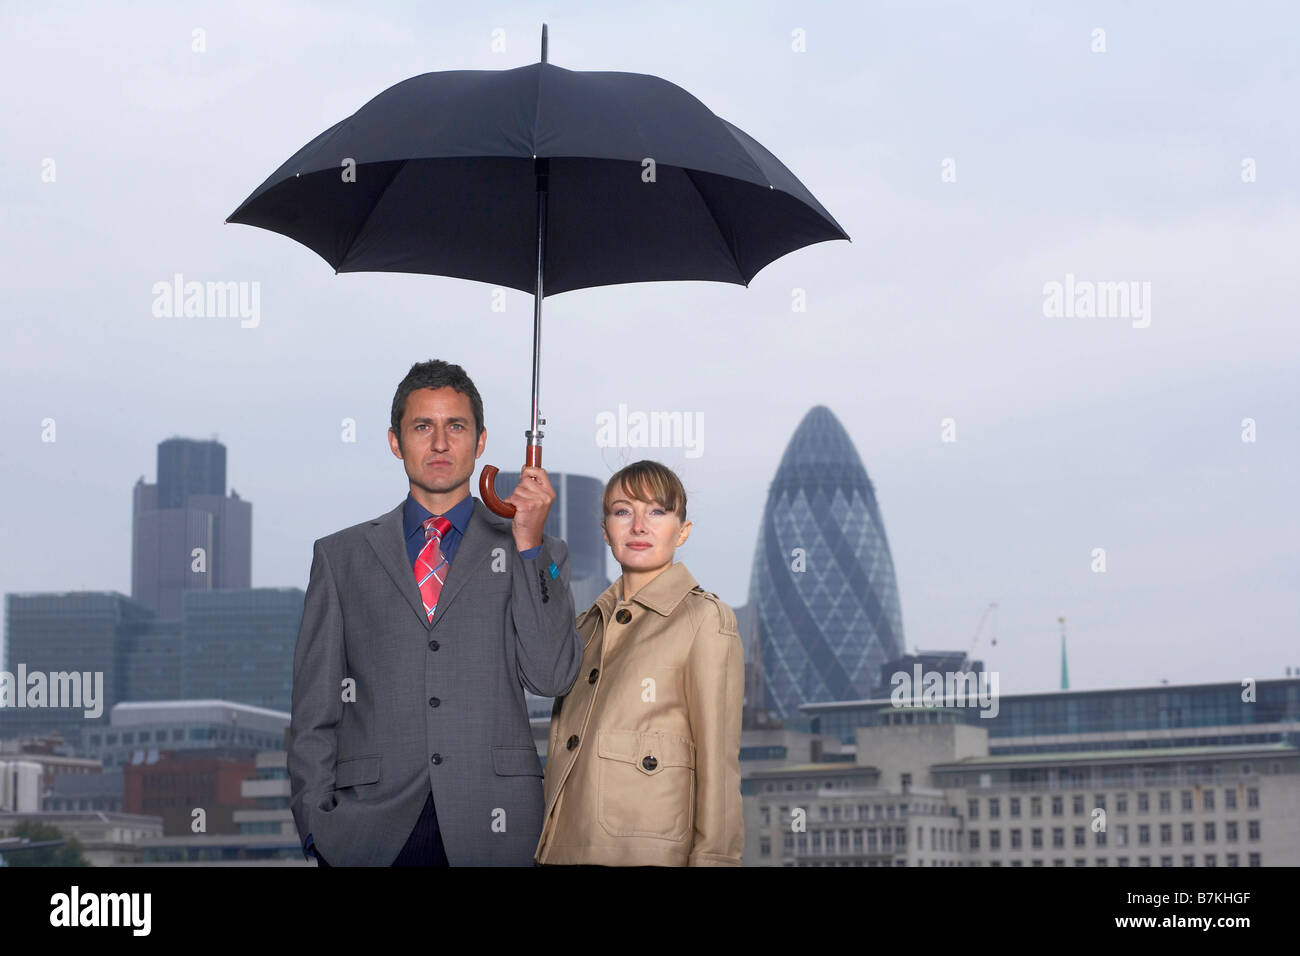 Man & Woman with Umbrella City Scape - Stock Image